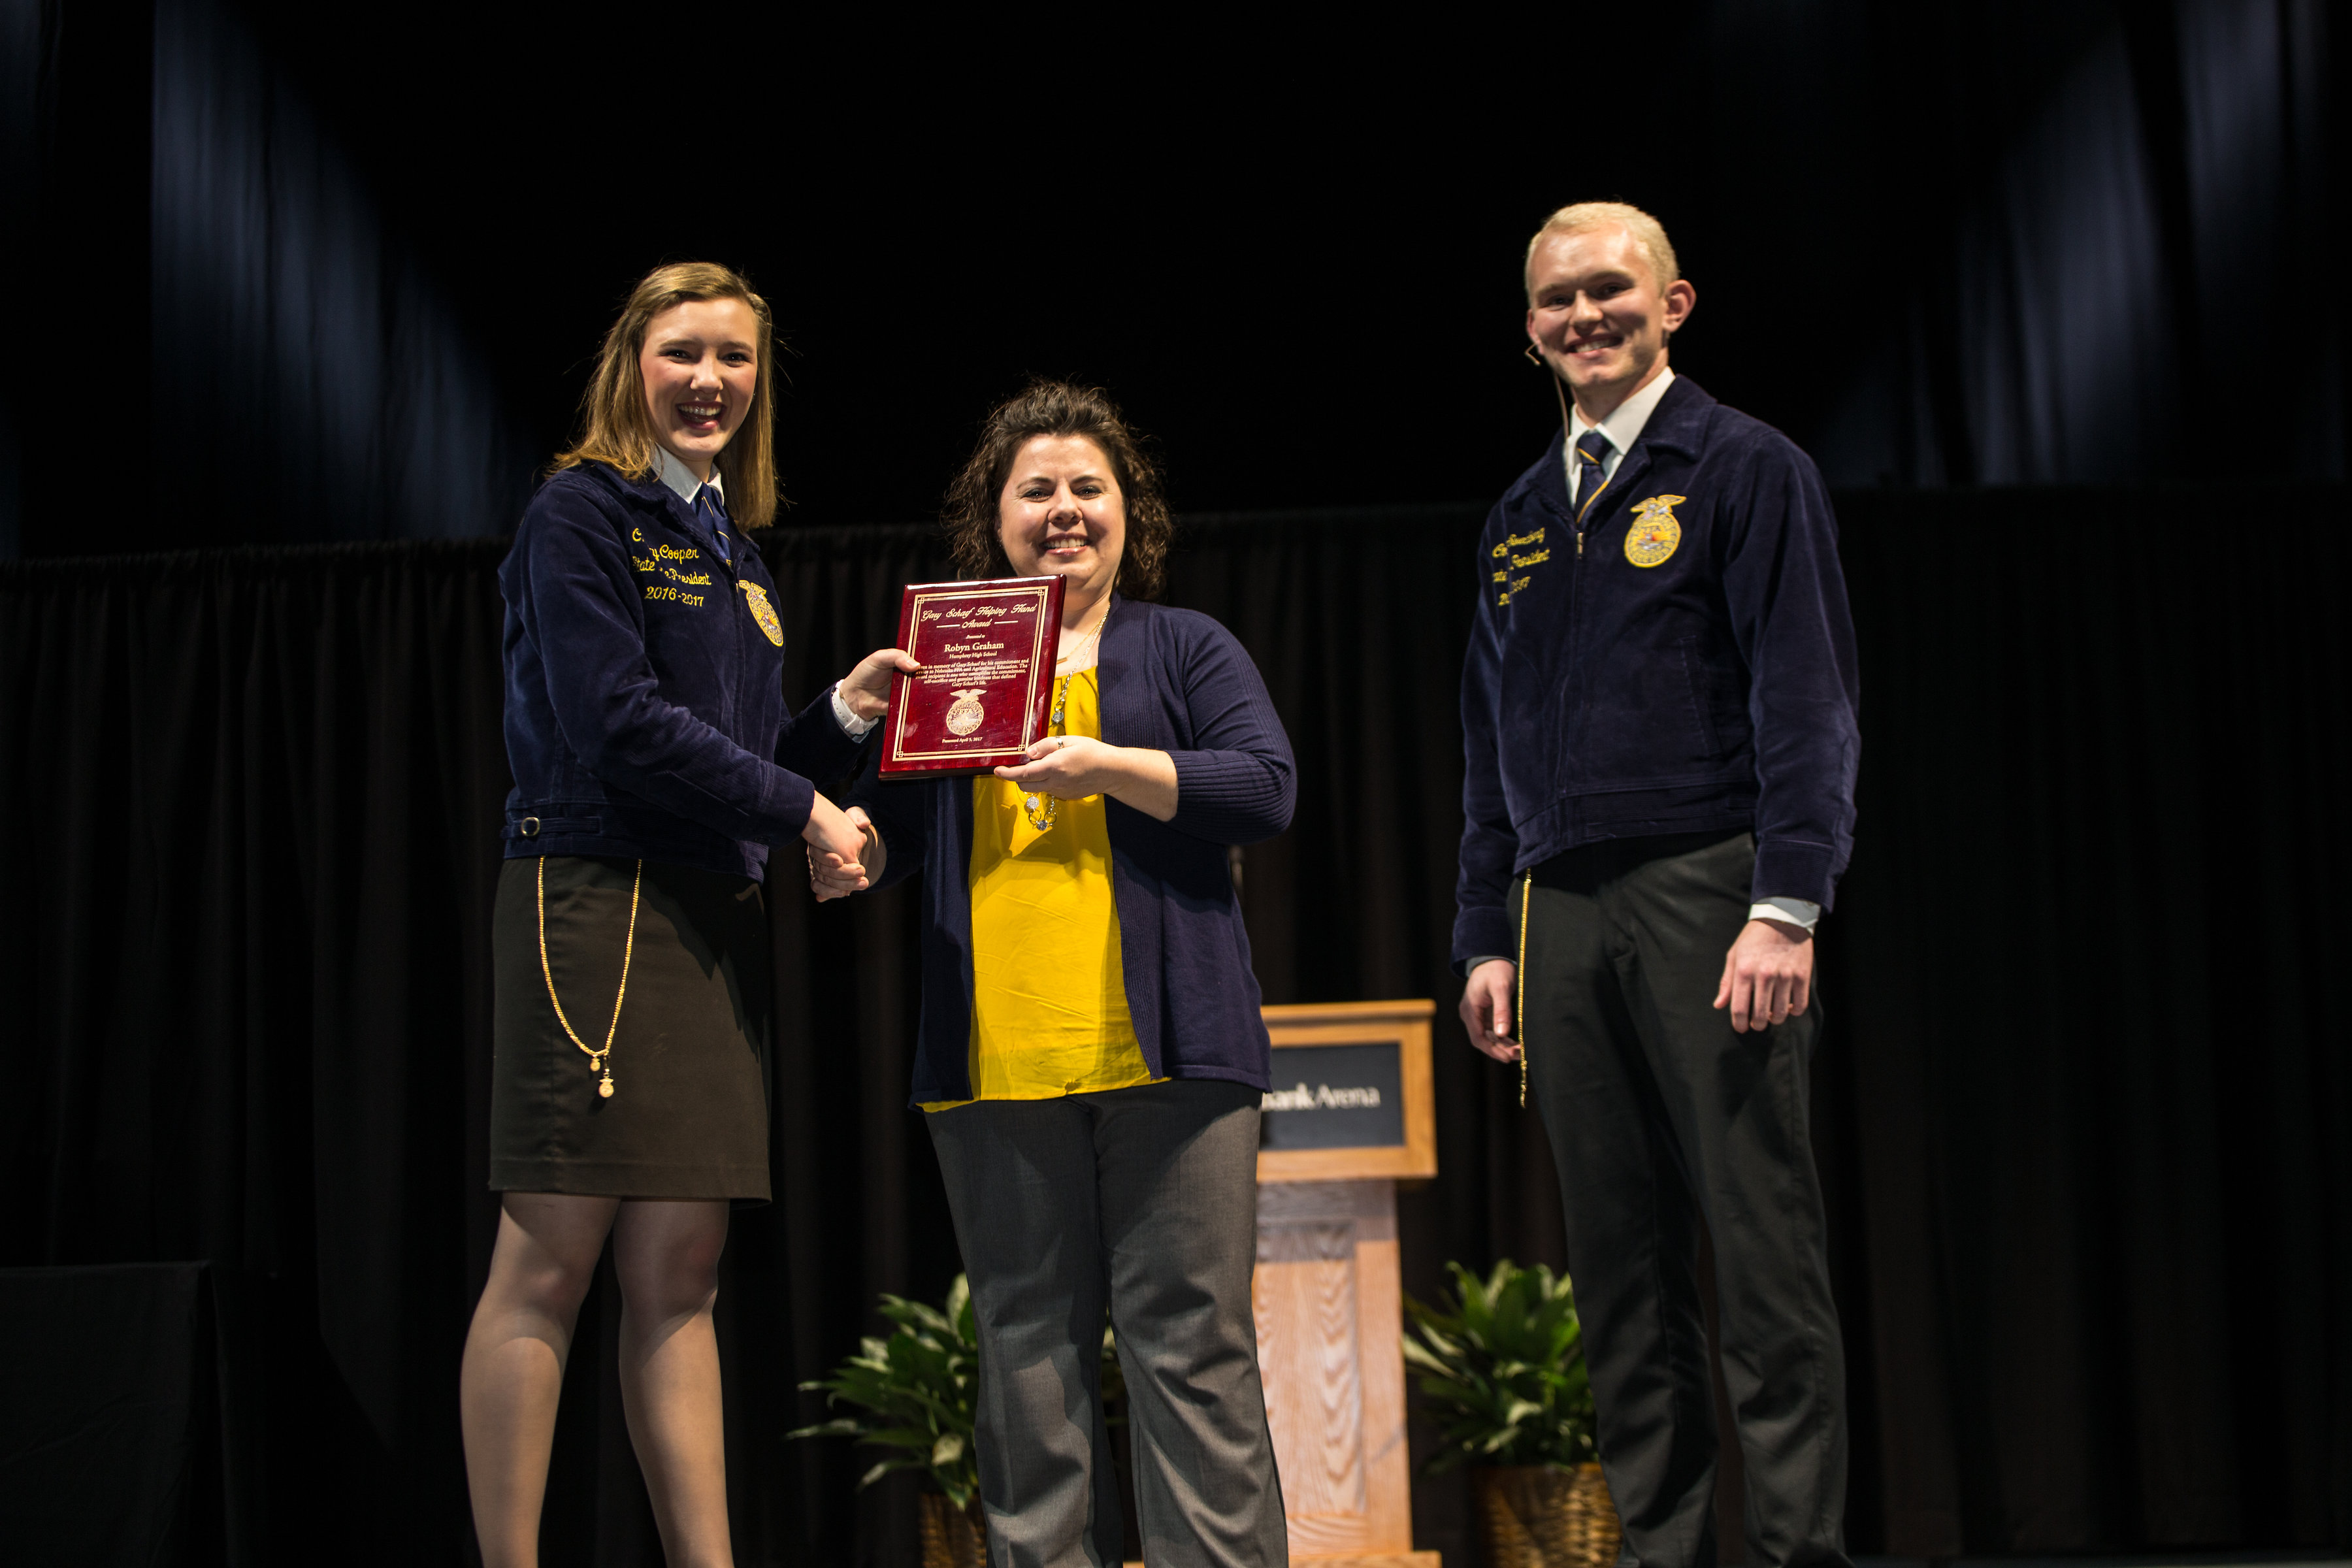 Graham Recognized for Contributions to Humphrey Community and School